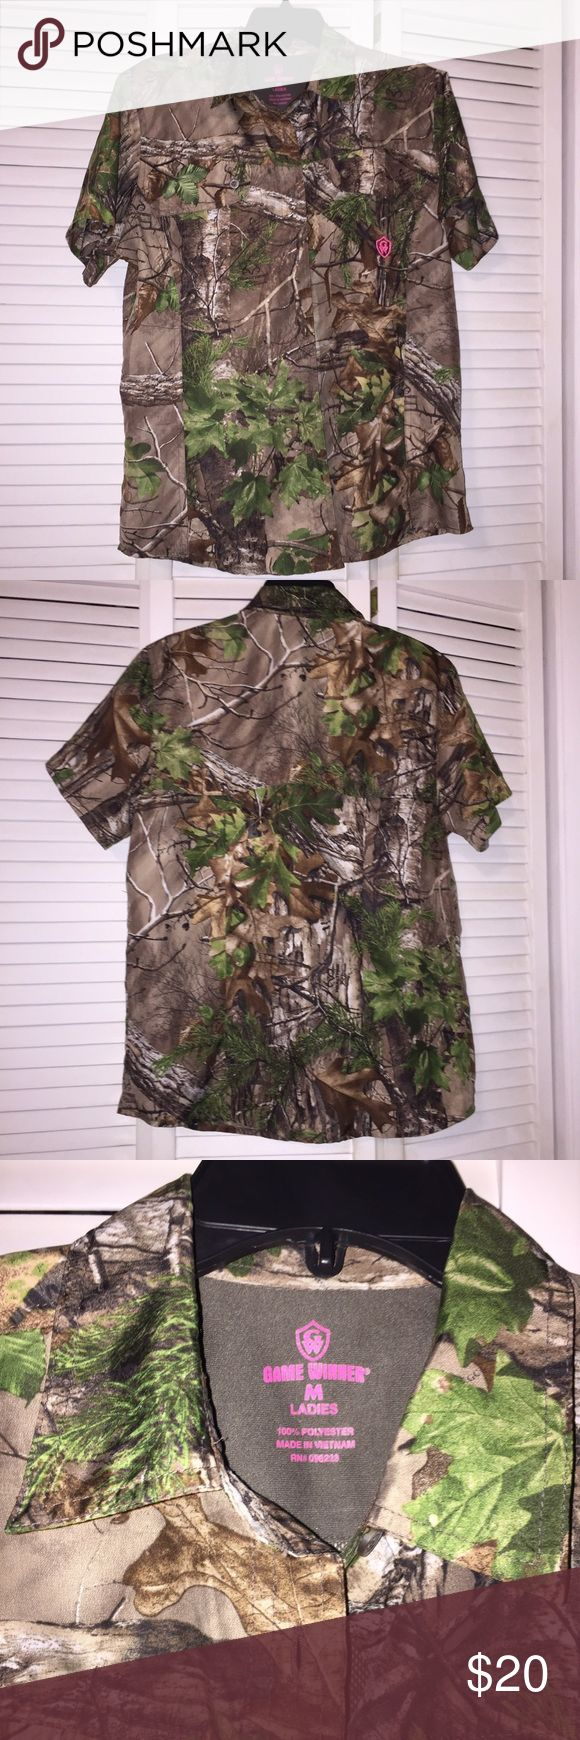 Game Winner Women's Dry Fit Button Up Camo Shirt Game Winner Women's Camo Dry Fit button up shirt! Brand new, but no tags. Size Medium! Make an offer! 😍 Game Winner Tops Button Down Shirts